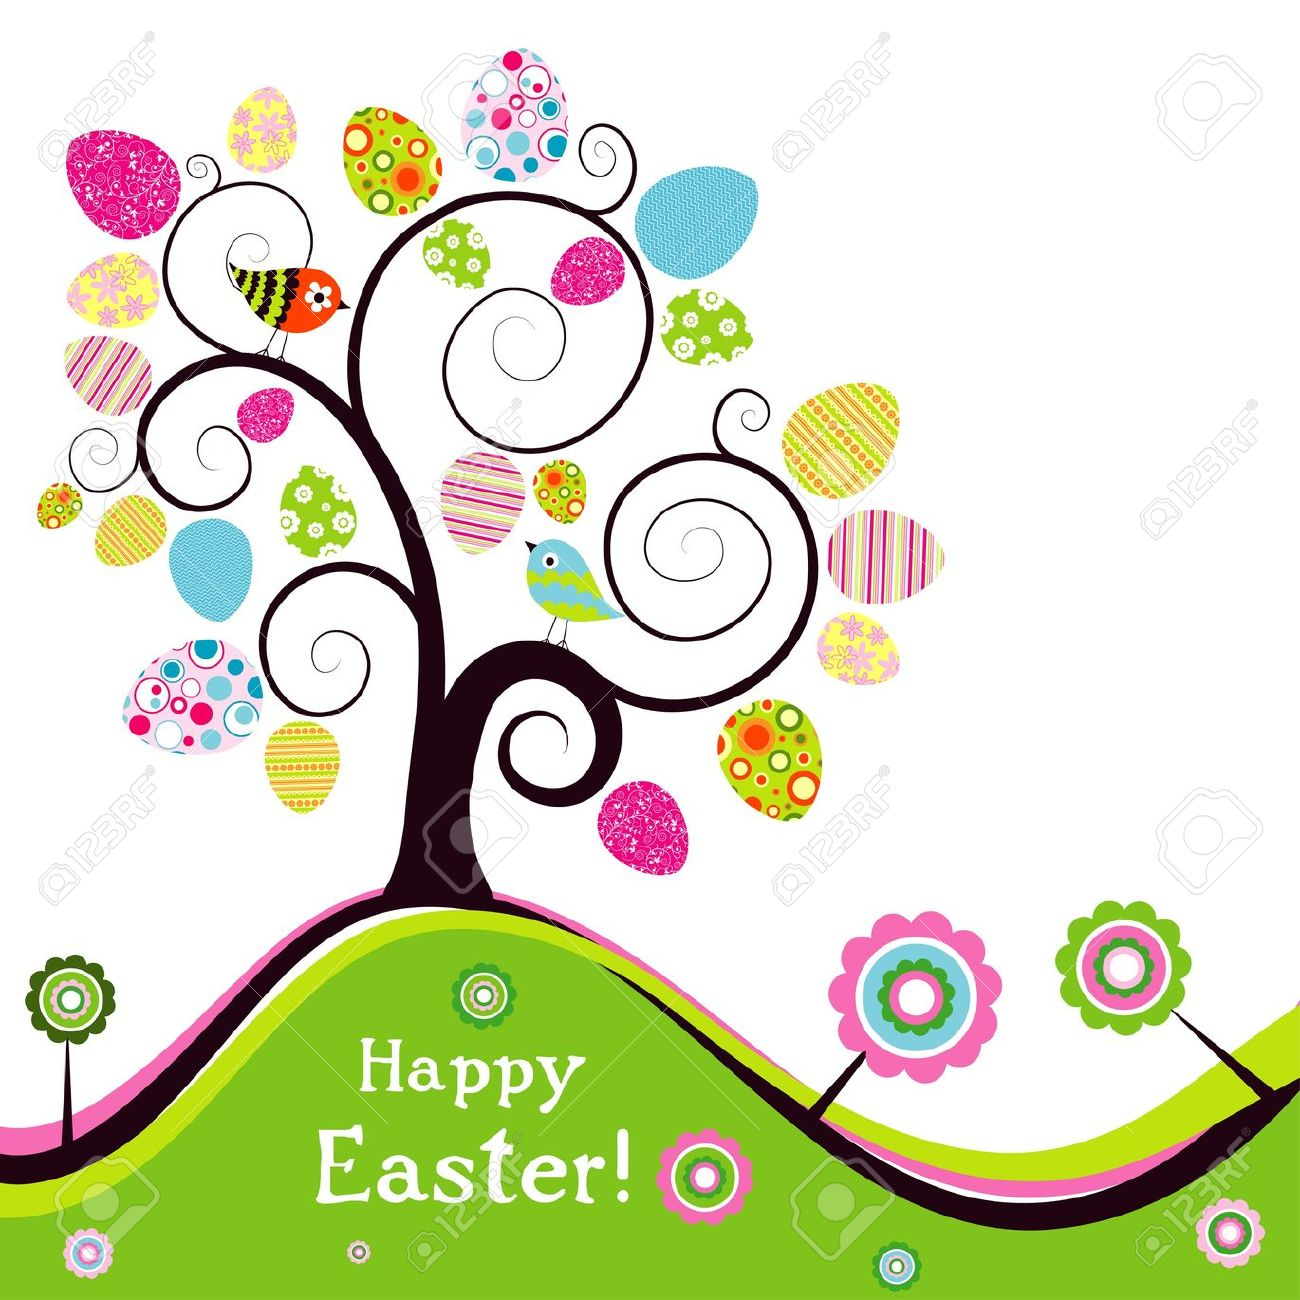 Template Easter Greeting Card, Vector Illustration Royalty Free.